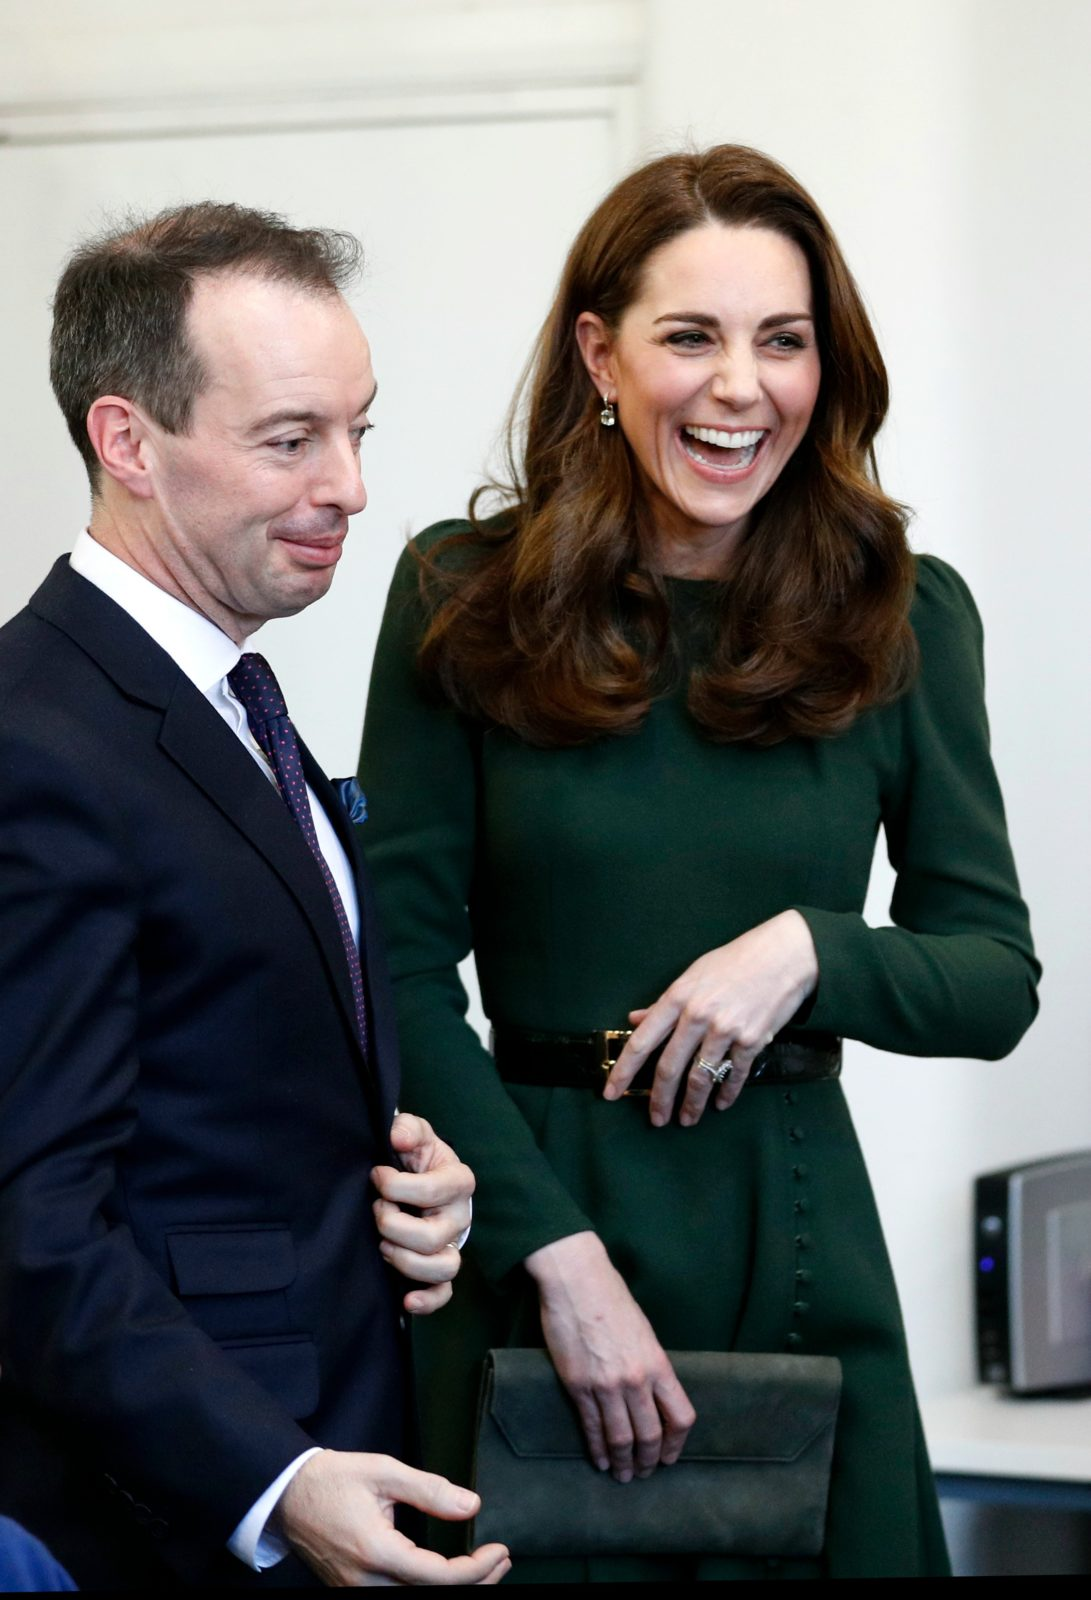 The duchess was left in fits of giggles inside. Source: Getty.